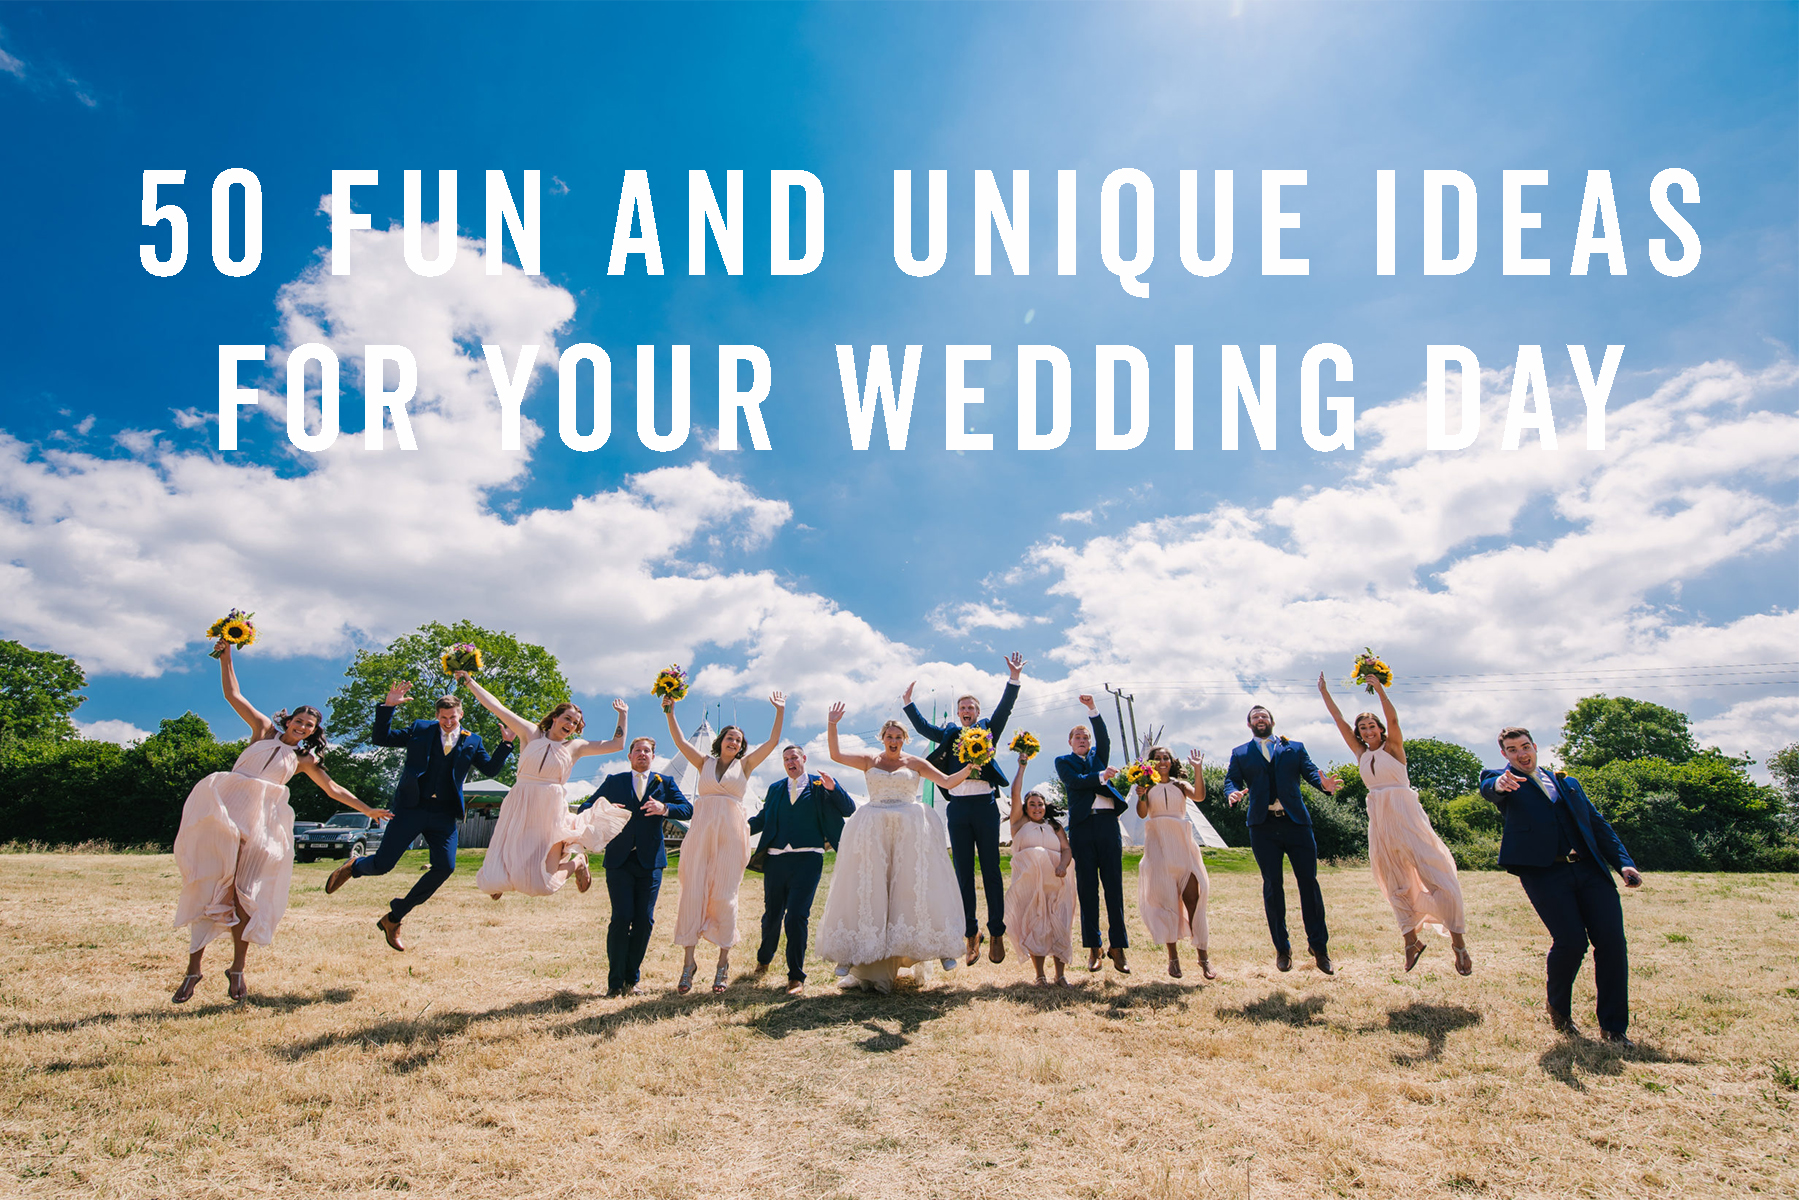 50 Unique And Fun Wedding Ideas To Make Your Wedding Day A